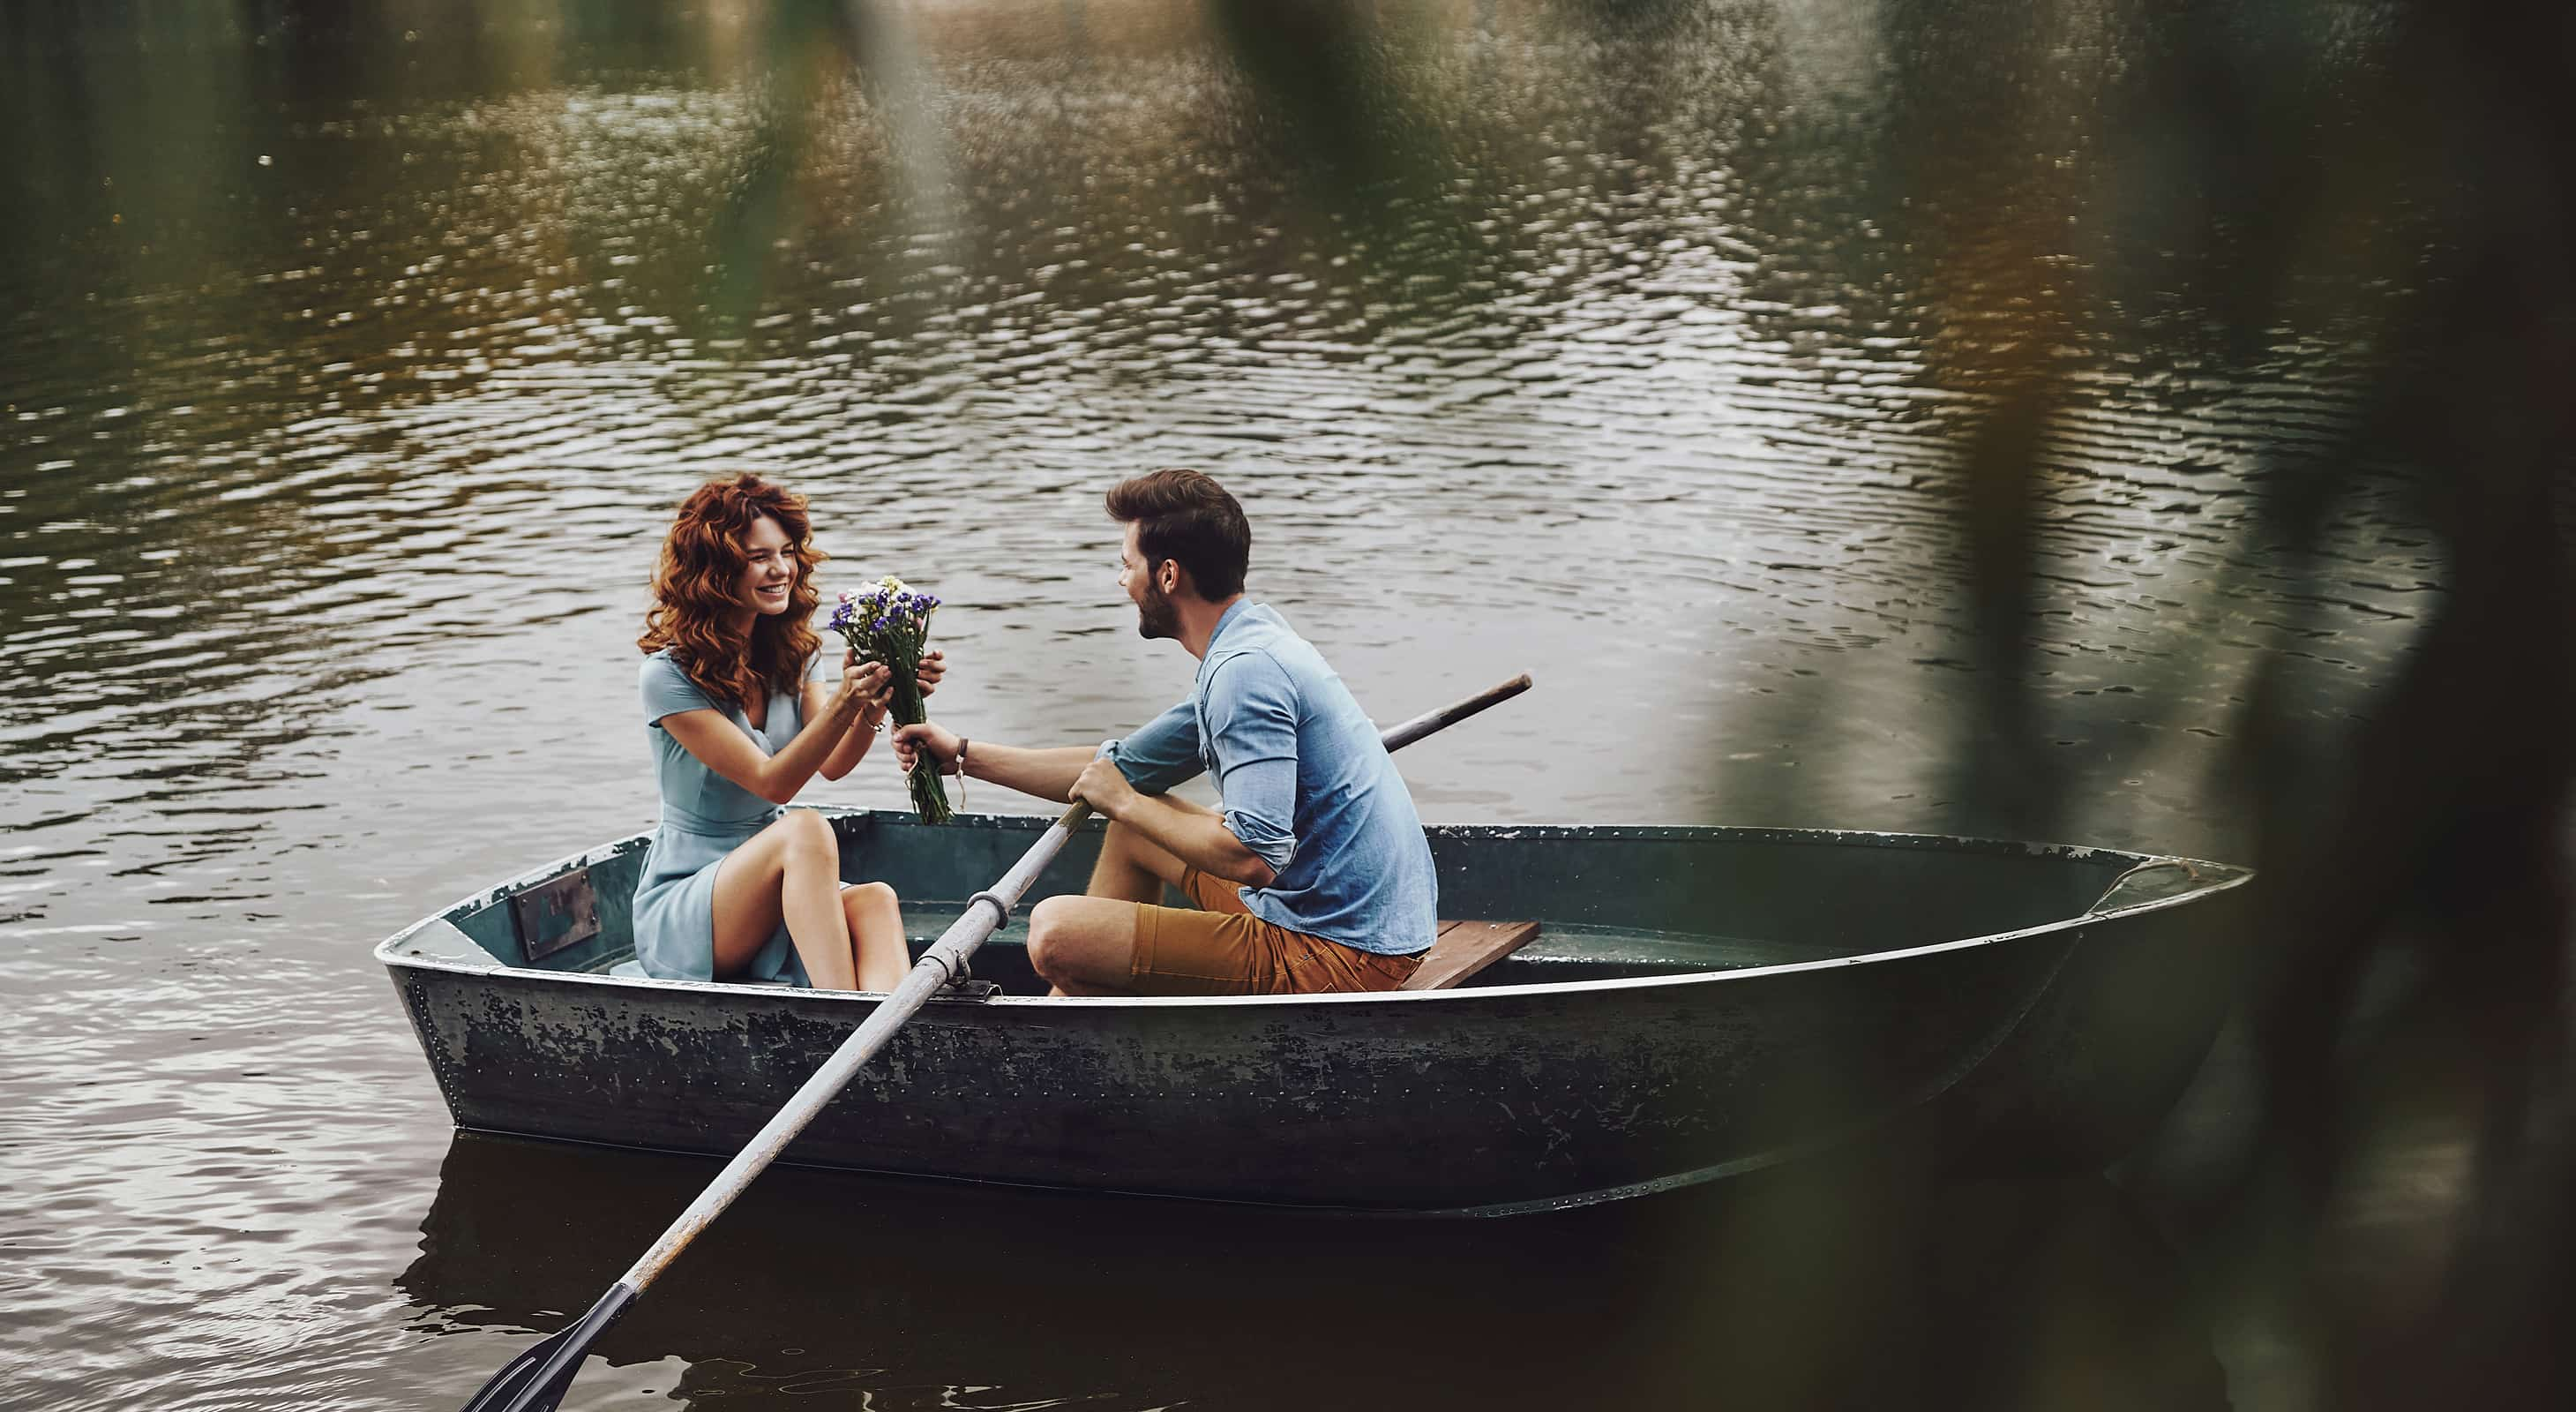 man handing woman flowers in a rowboat on a Teas lake